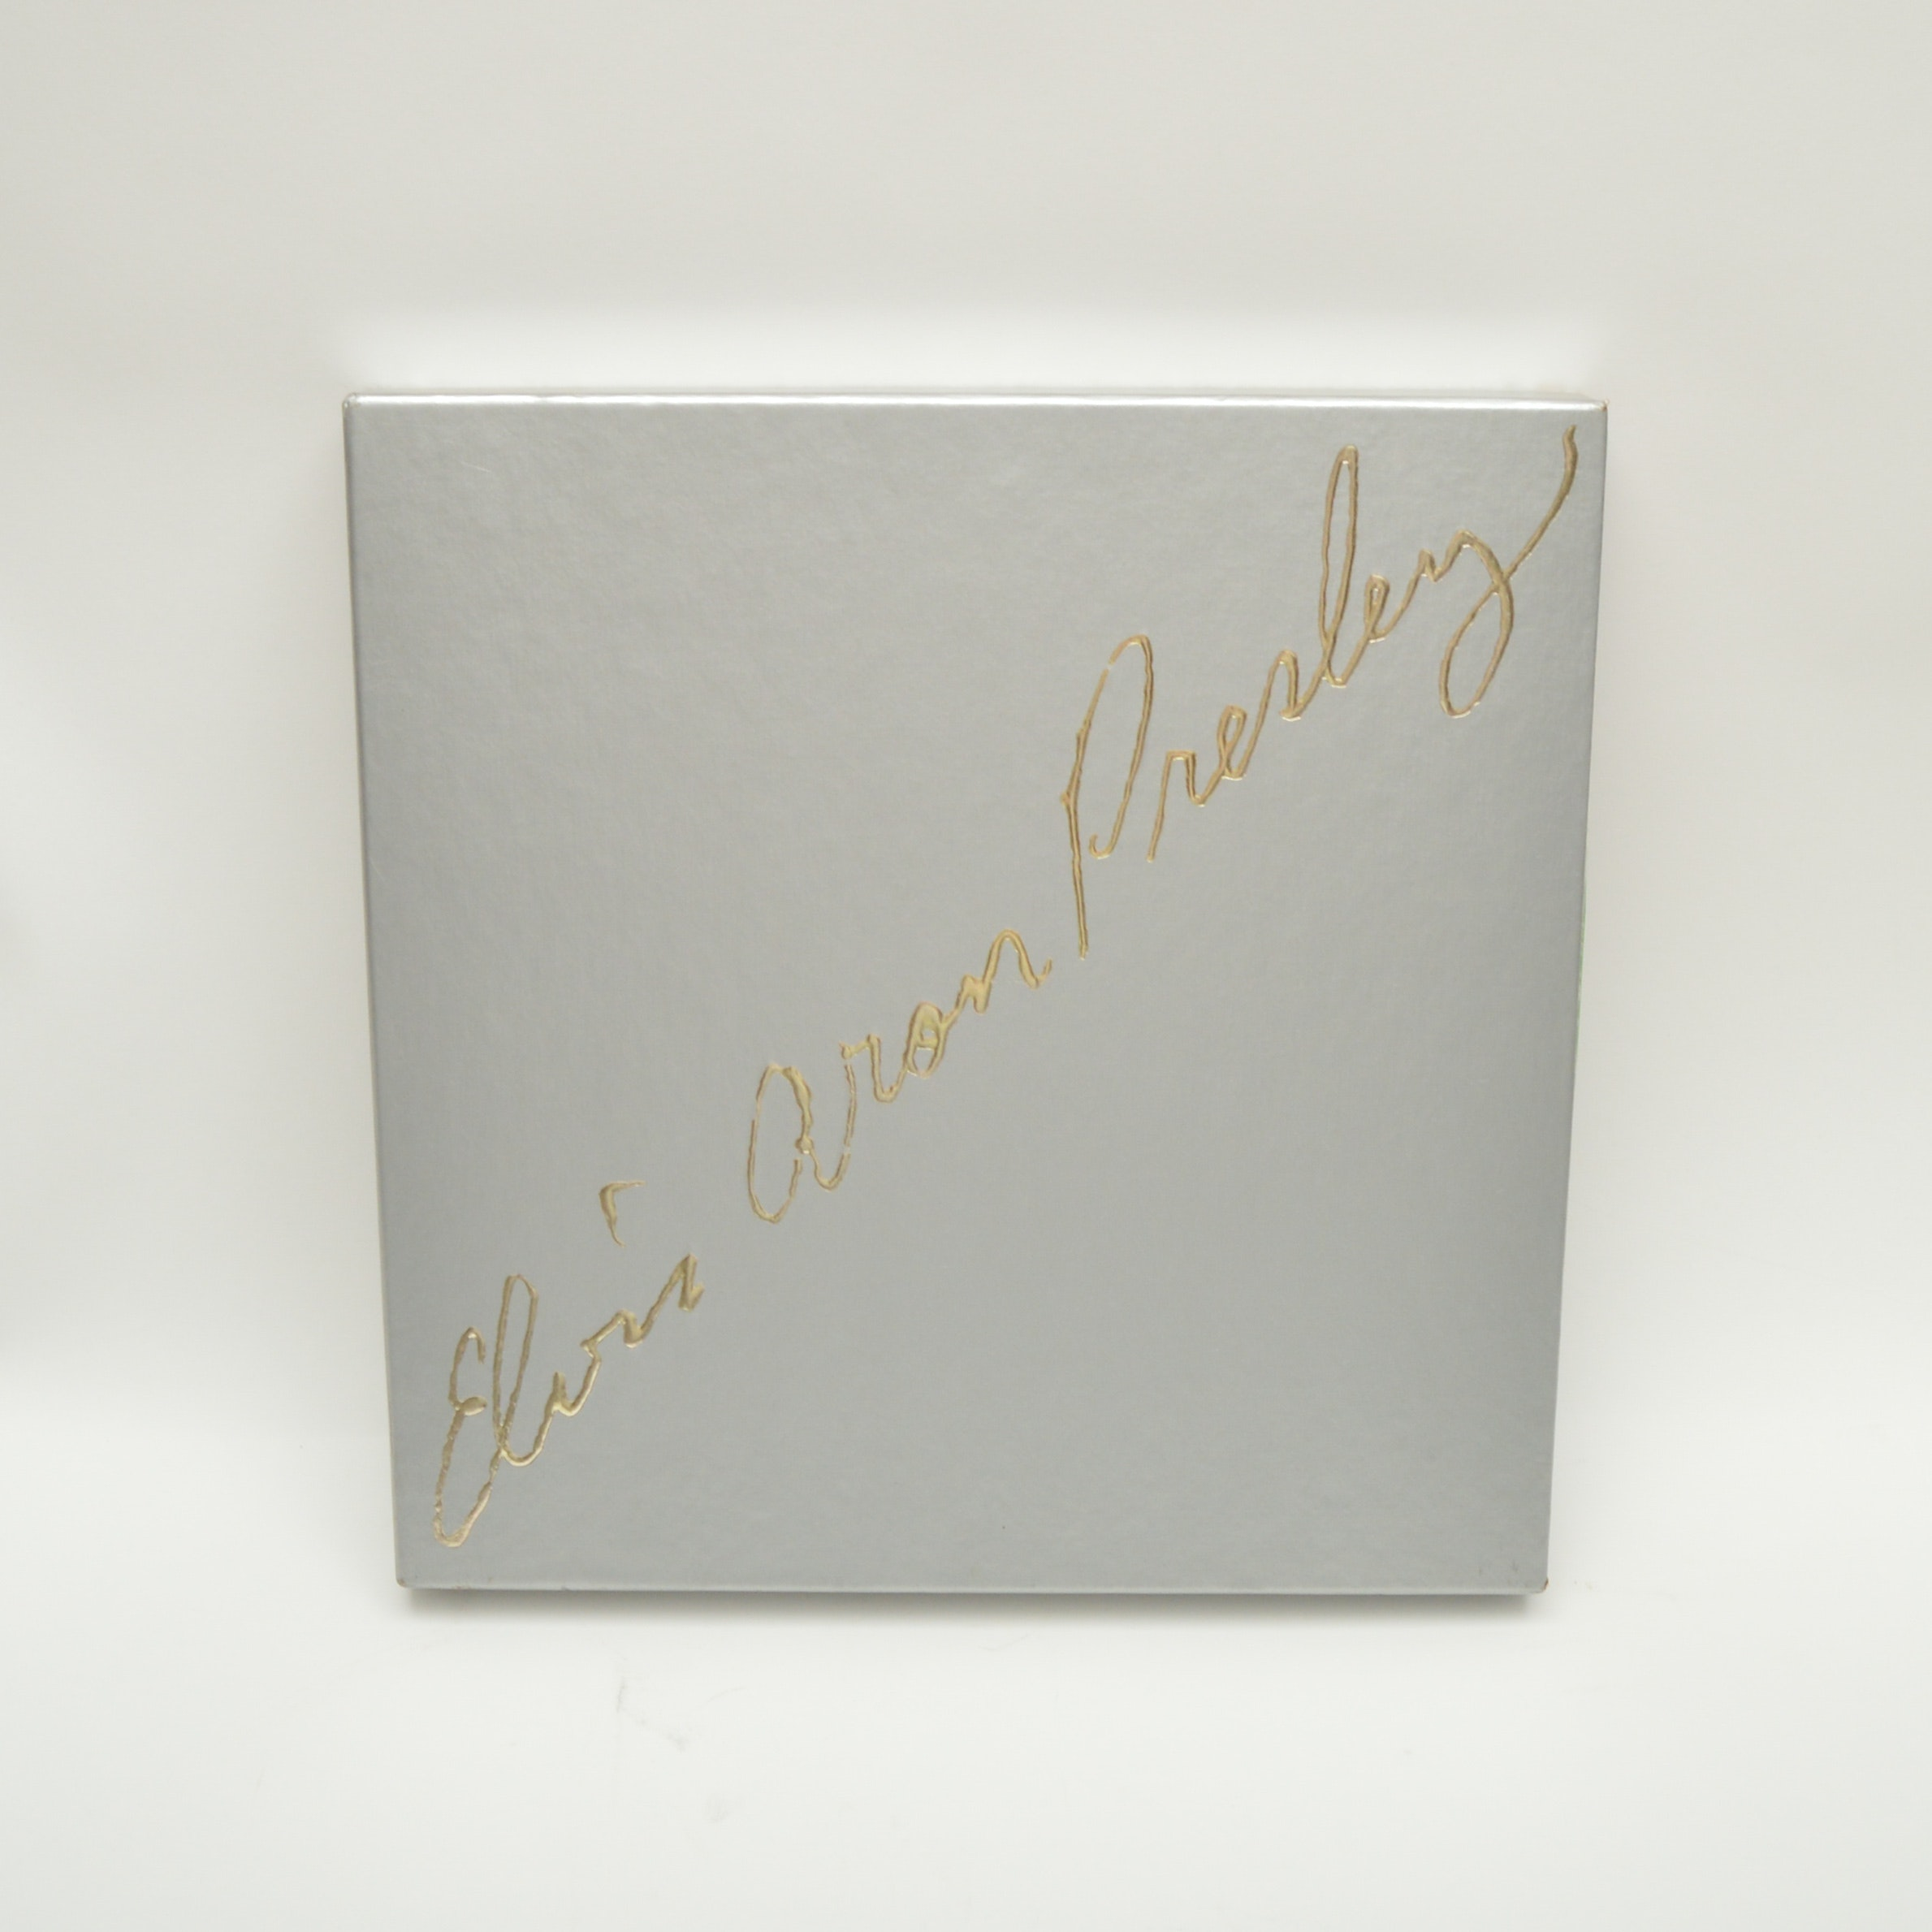 Limited Edition Elvis Presley 25th Anniversary Record Set